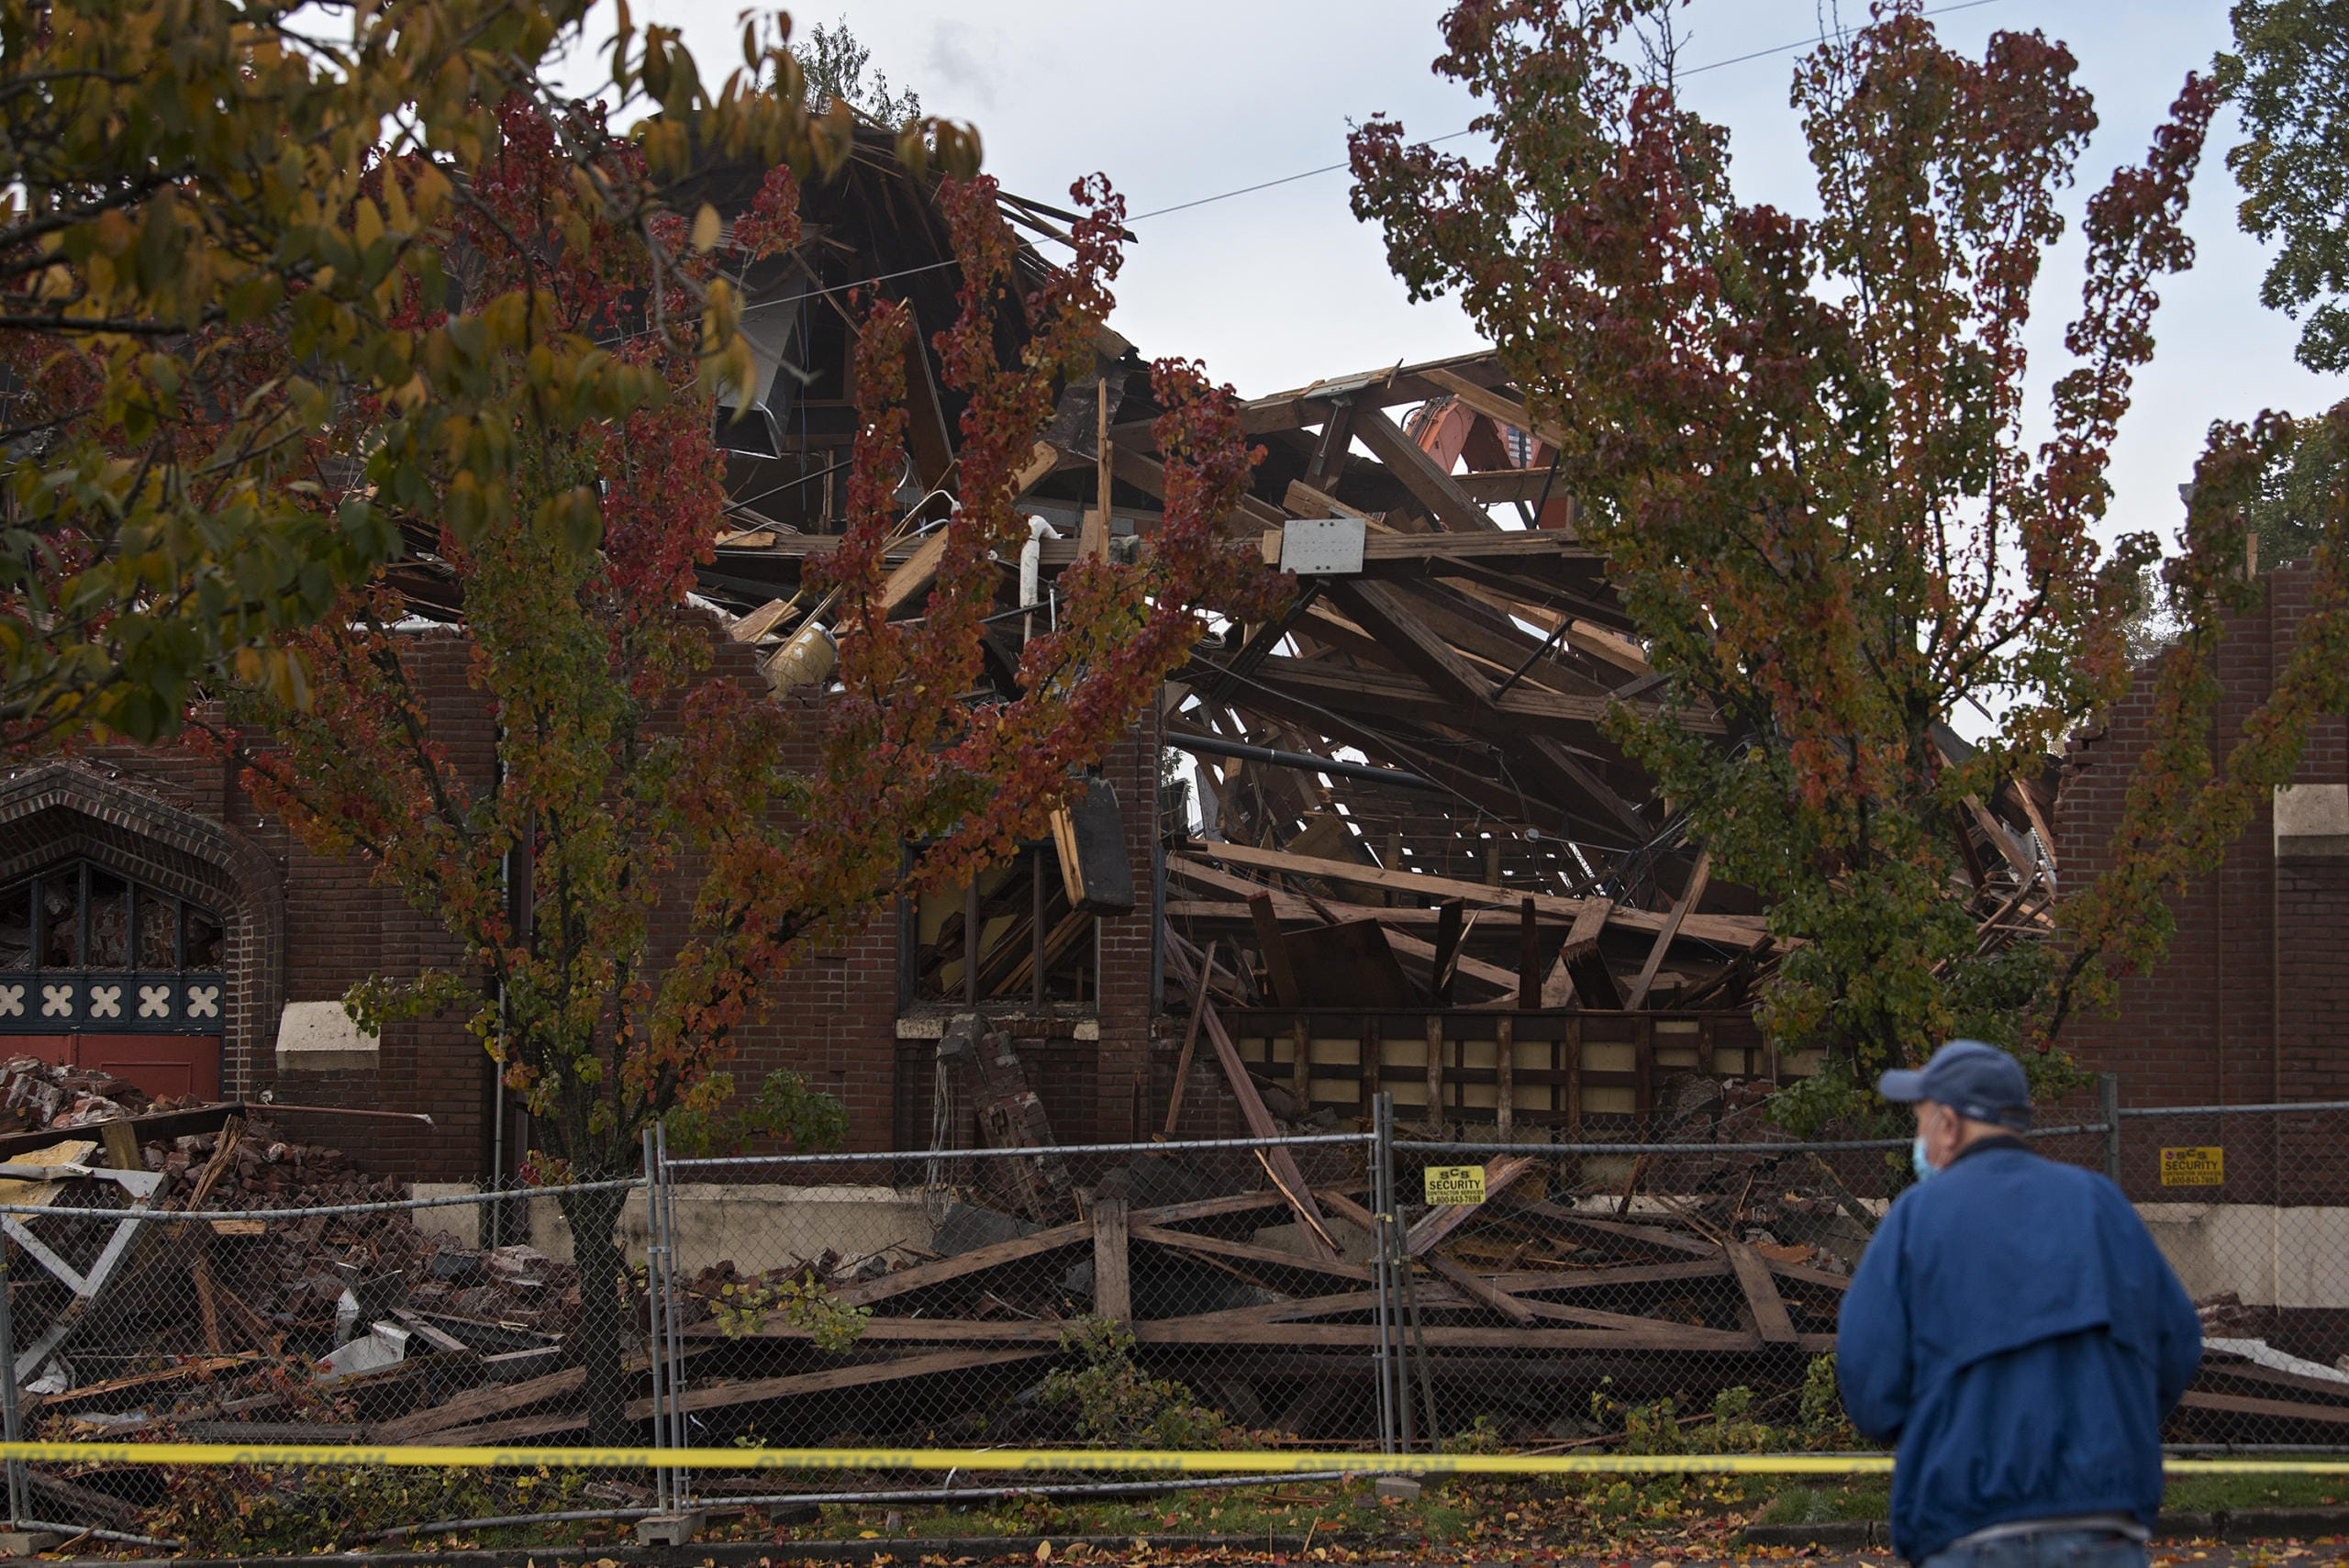 """Gary Dunne of Vancouver pauses to take photos during the demolition of the former downtown location of New Heights Church on Friday morning, Nov. 13, 2020. Dunne was also joined by his wife, Marlene, who he married at the church in 1959. The couple raised three daughters there. """"It just felt like home,"""" Marlene Dunne said."""